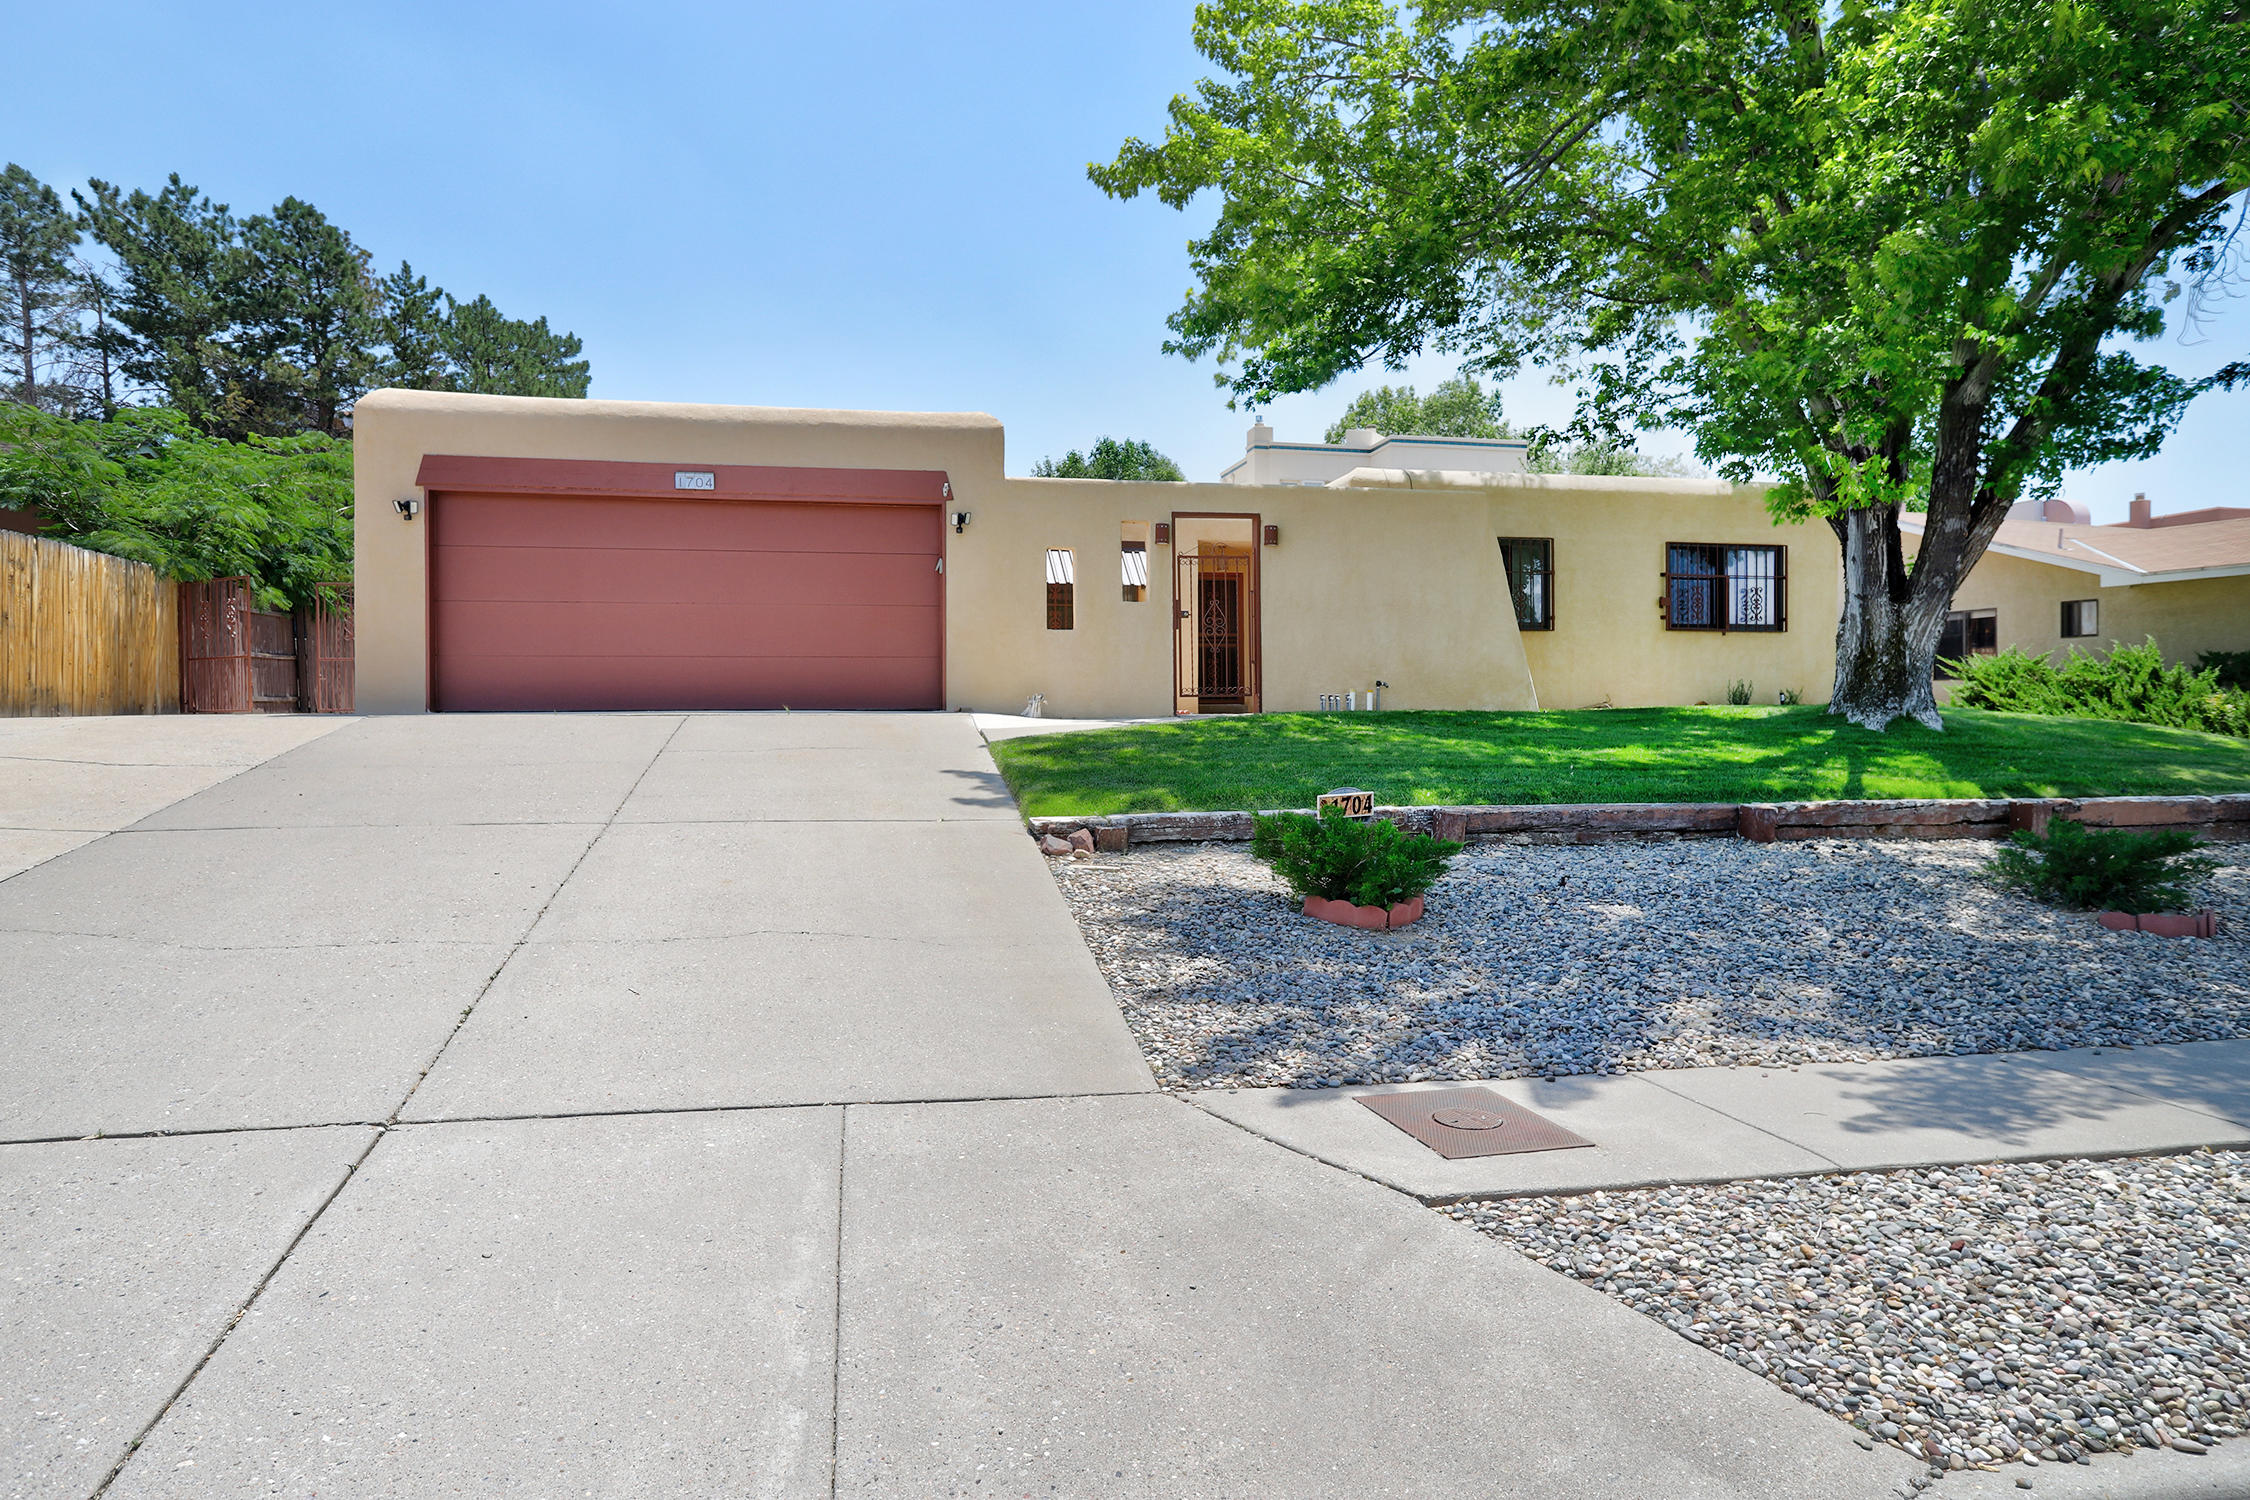 This Beauty has a Great 4 Bedroom Floorplan! Private Courtyard Entrance, a Vaulted Ceiling In Large Family Room with Vaulted Ceilings, Clerestory Windows and a Gas Log Kiva Fireplace. Bright Cook's Kitchen with Sunny Breakfast Nook, Full size Laundry Room, 2nd Living area and Dining Room! All Bedrooms are nice size and Owner's Suite has a Double Sink Bath Plus Walk-in Closet. Lush Backyard with Covered Patio and Backyard Access and long pad is perfect for All Your Toys! Do Not Miss ONE!!